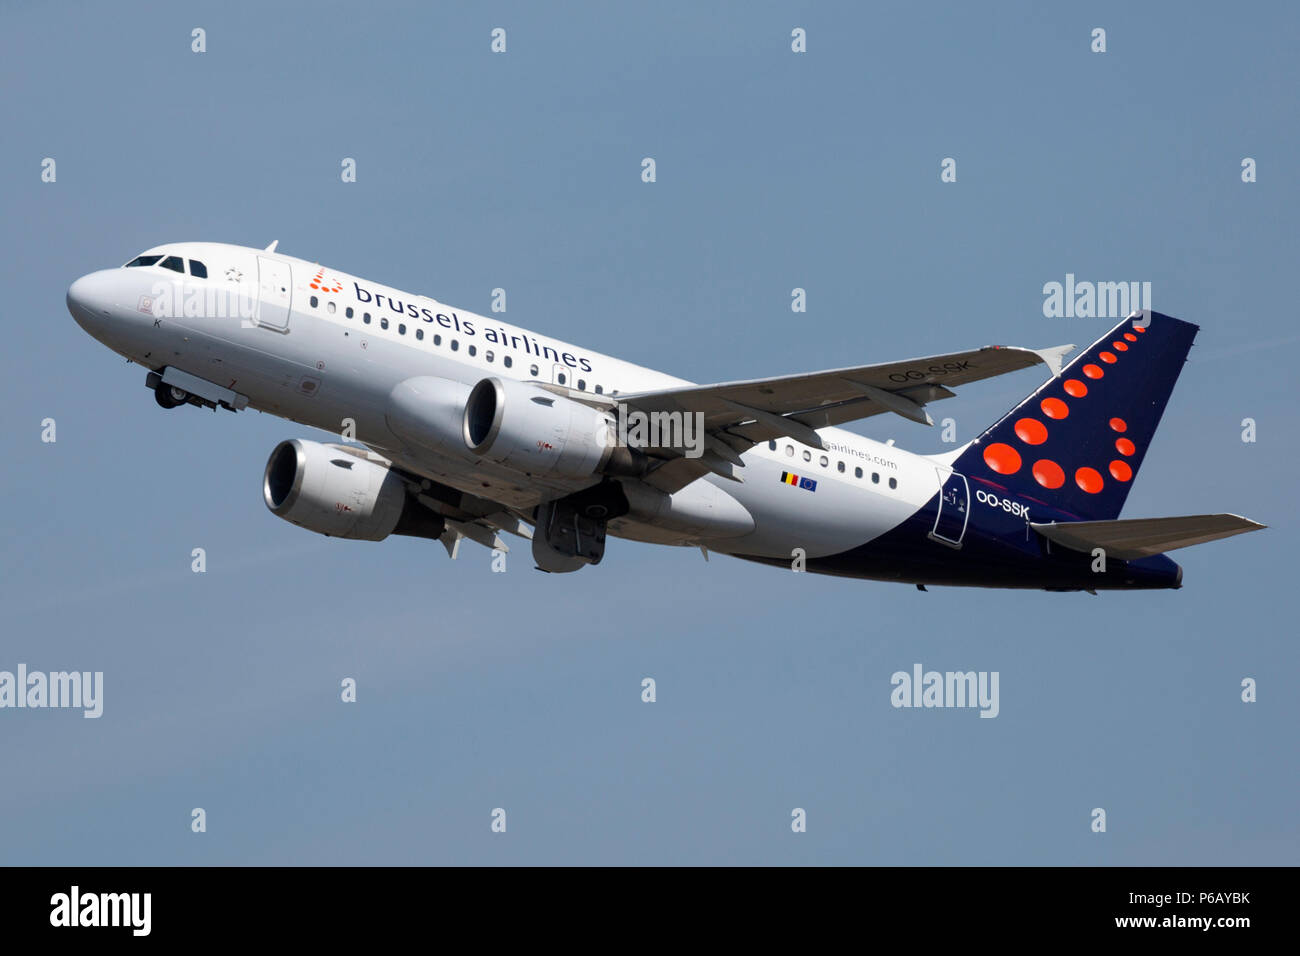 A Brussels Airlines Airbus A319, OO-SSK, taking off from Manchester Airport in England. - Stock Image